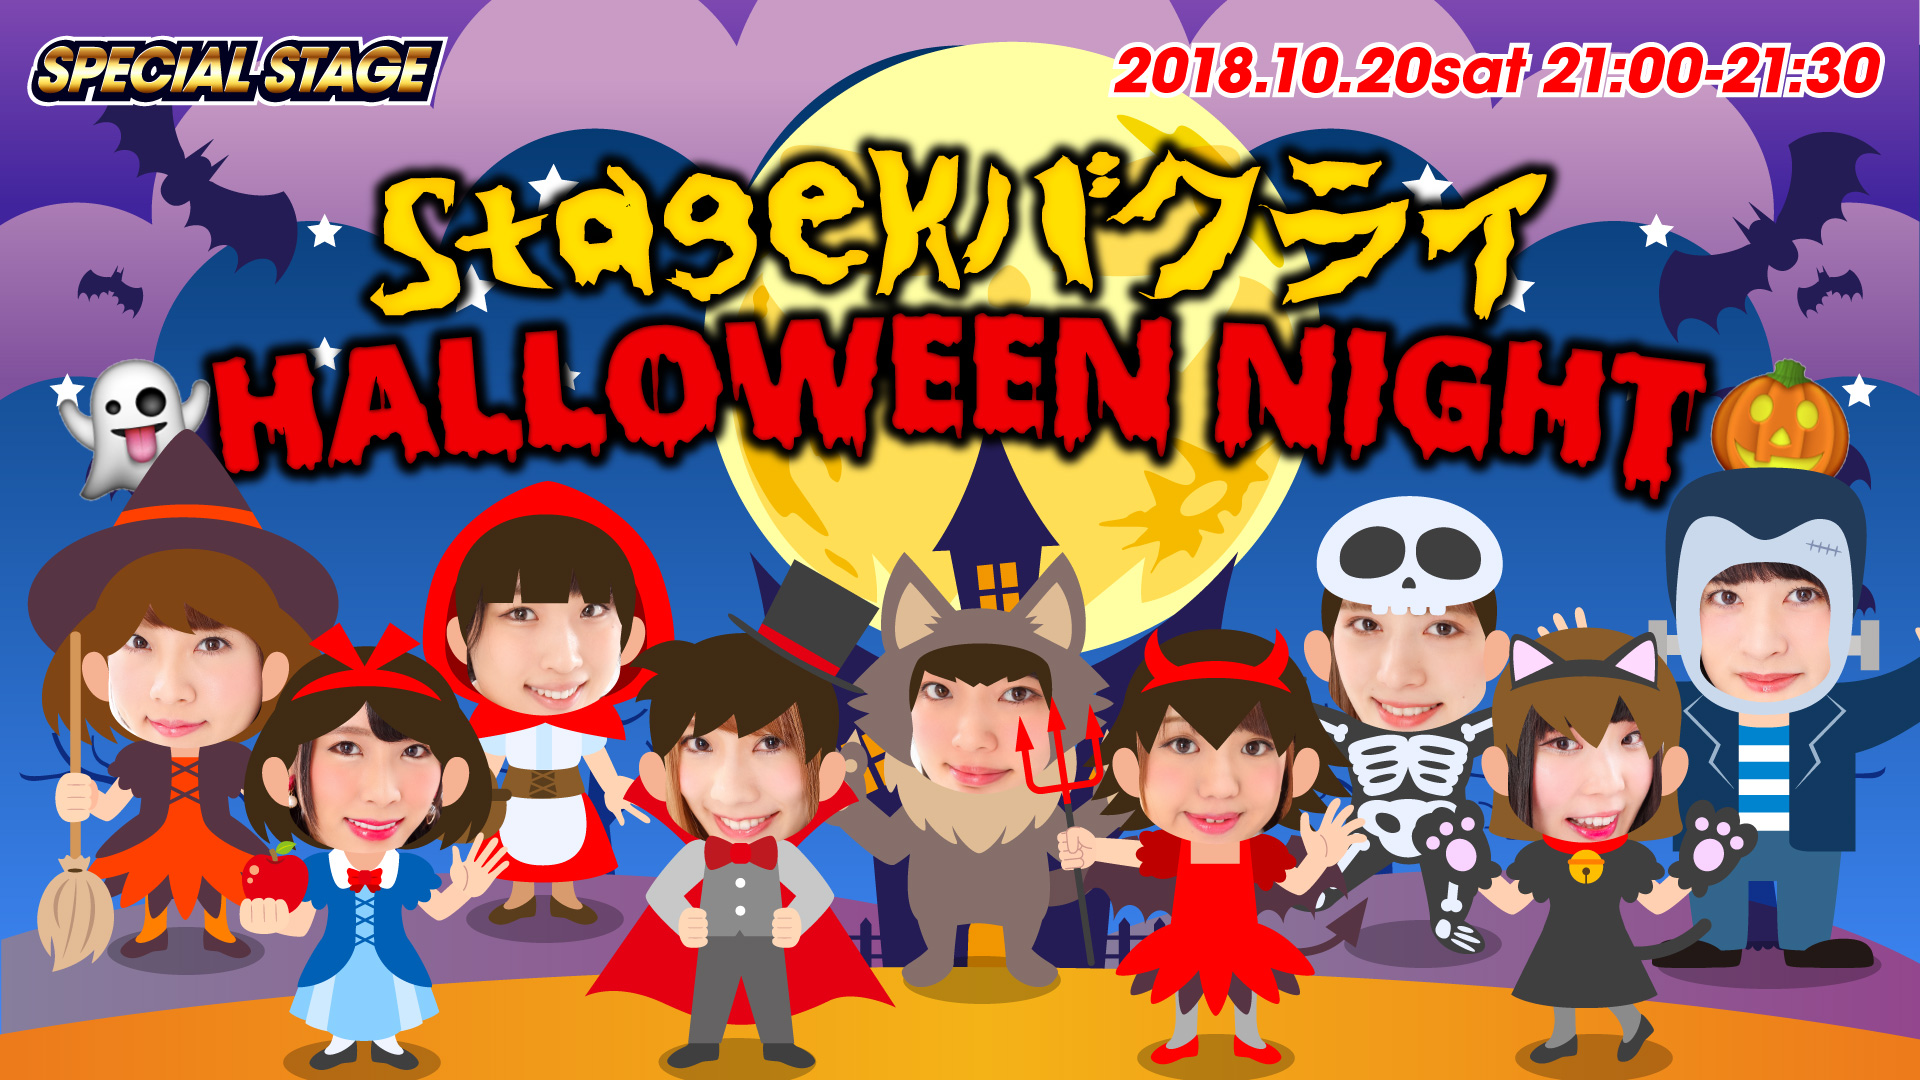 「StageKバクライ〜Halloween night〜」